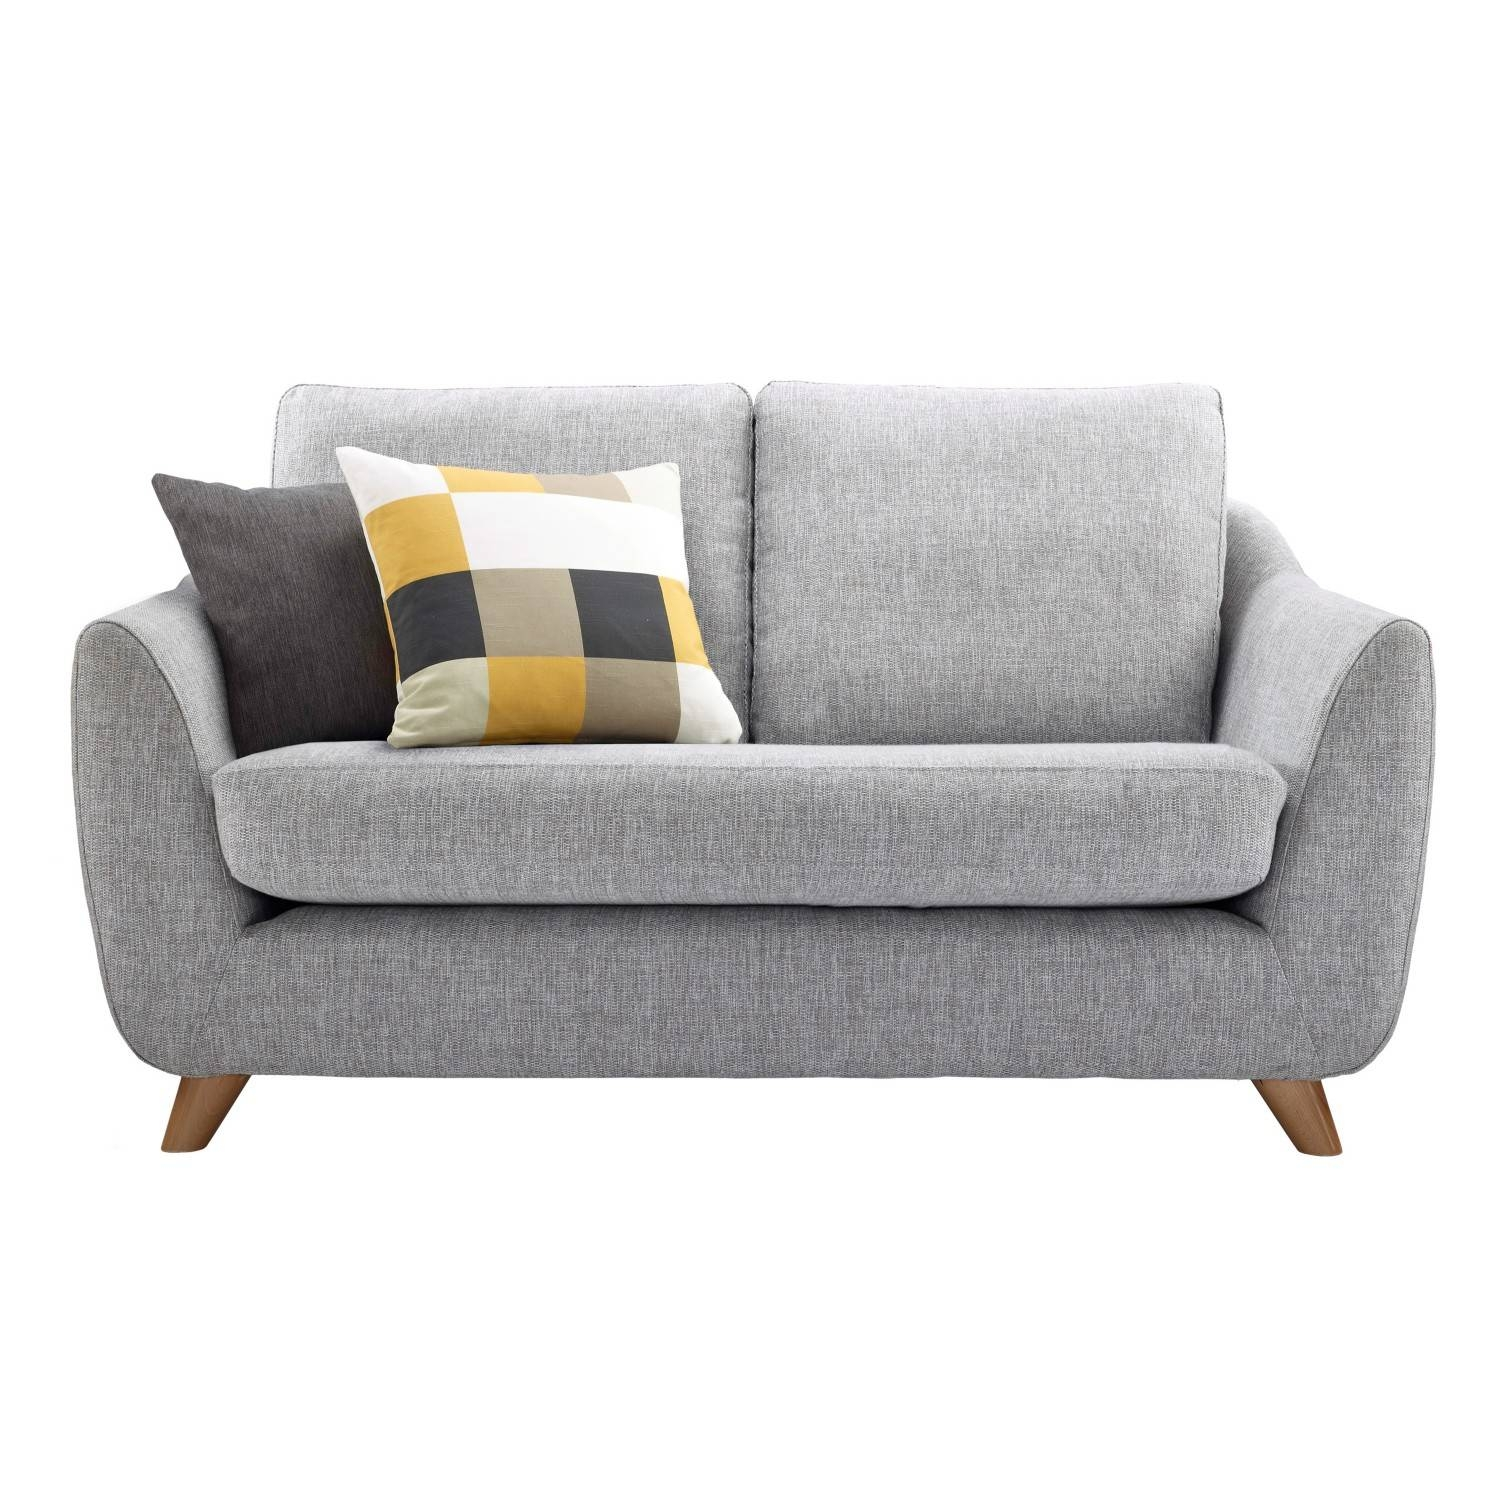 Furniture: Interior Modern Sofa Bed Cute Sofas Design Interior in Modern Sofas Houston (Image 4 of 30)